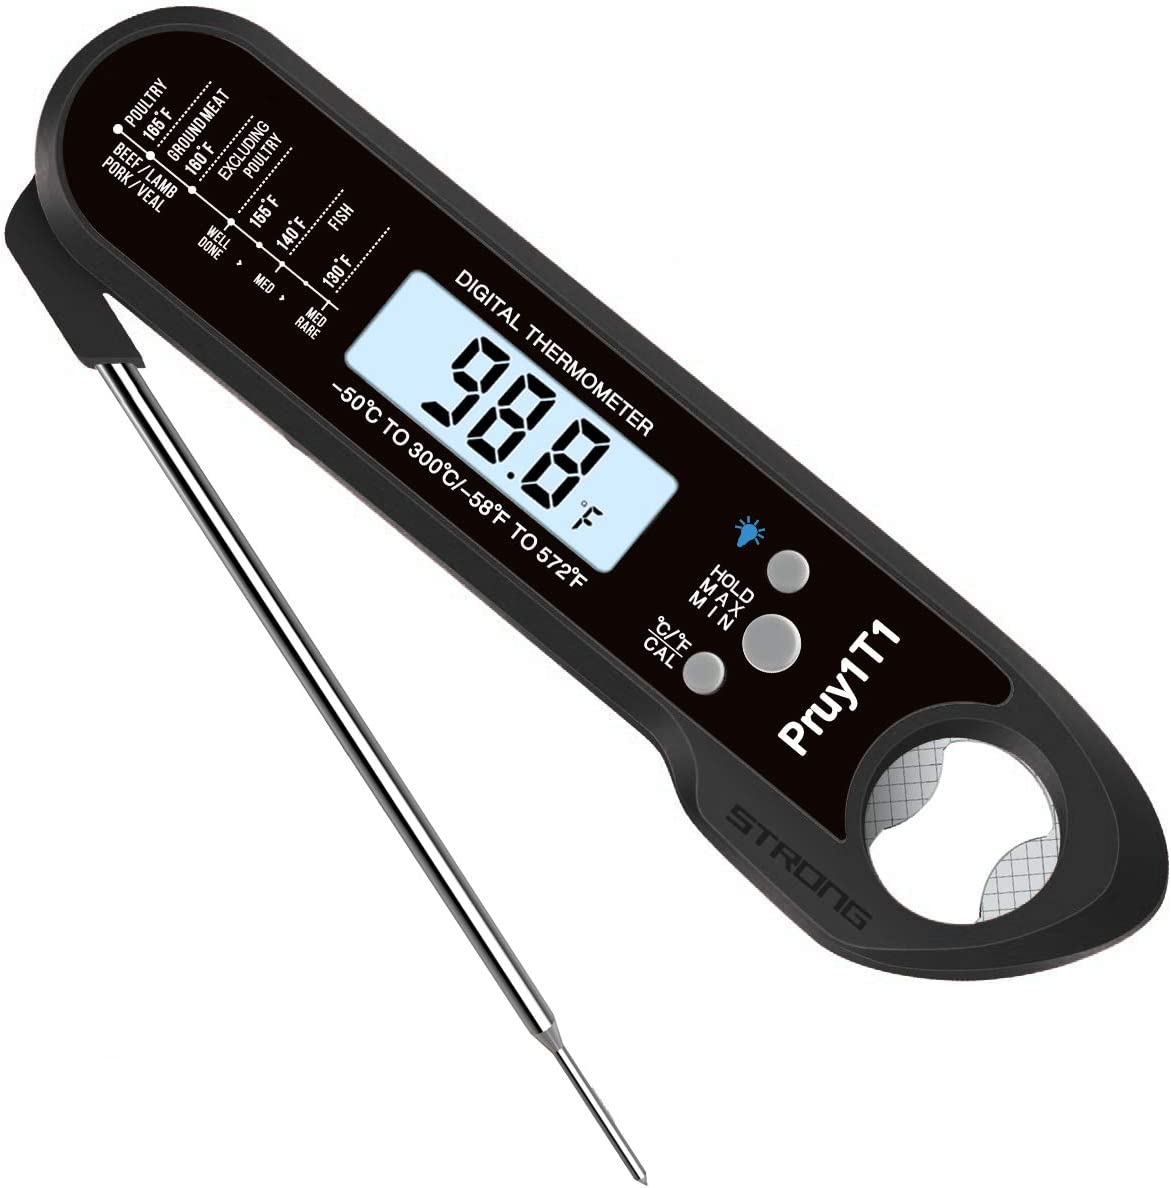 Digital Instant Read Meat Thermometer,Kitchen Cooking Candy Food Thermometers with Backlight & Calibration Bottle Opener, Best Waterproof Ultra Fast Kitchen Thermometer for Cooking BBQ Smoker Chefs